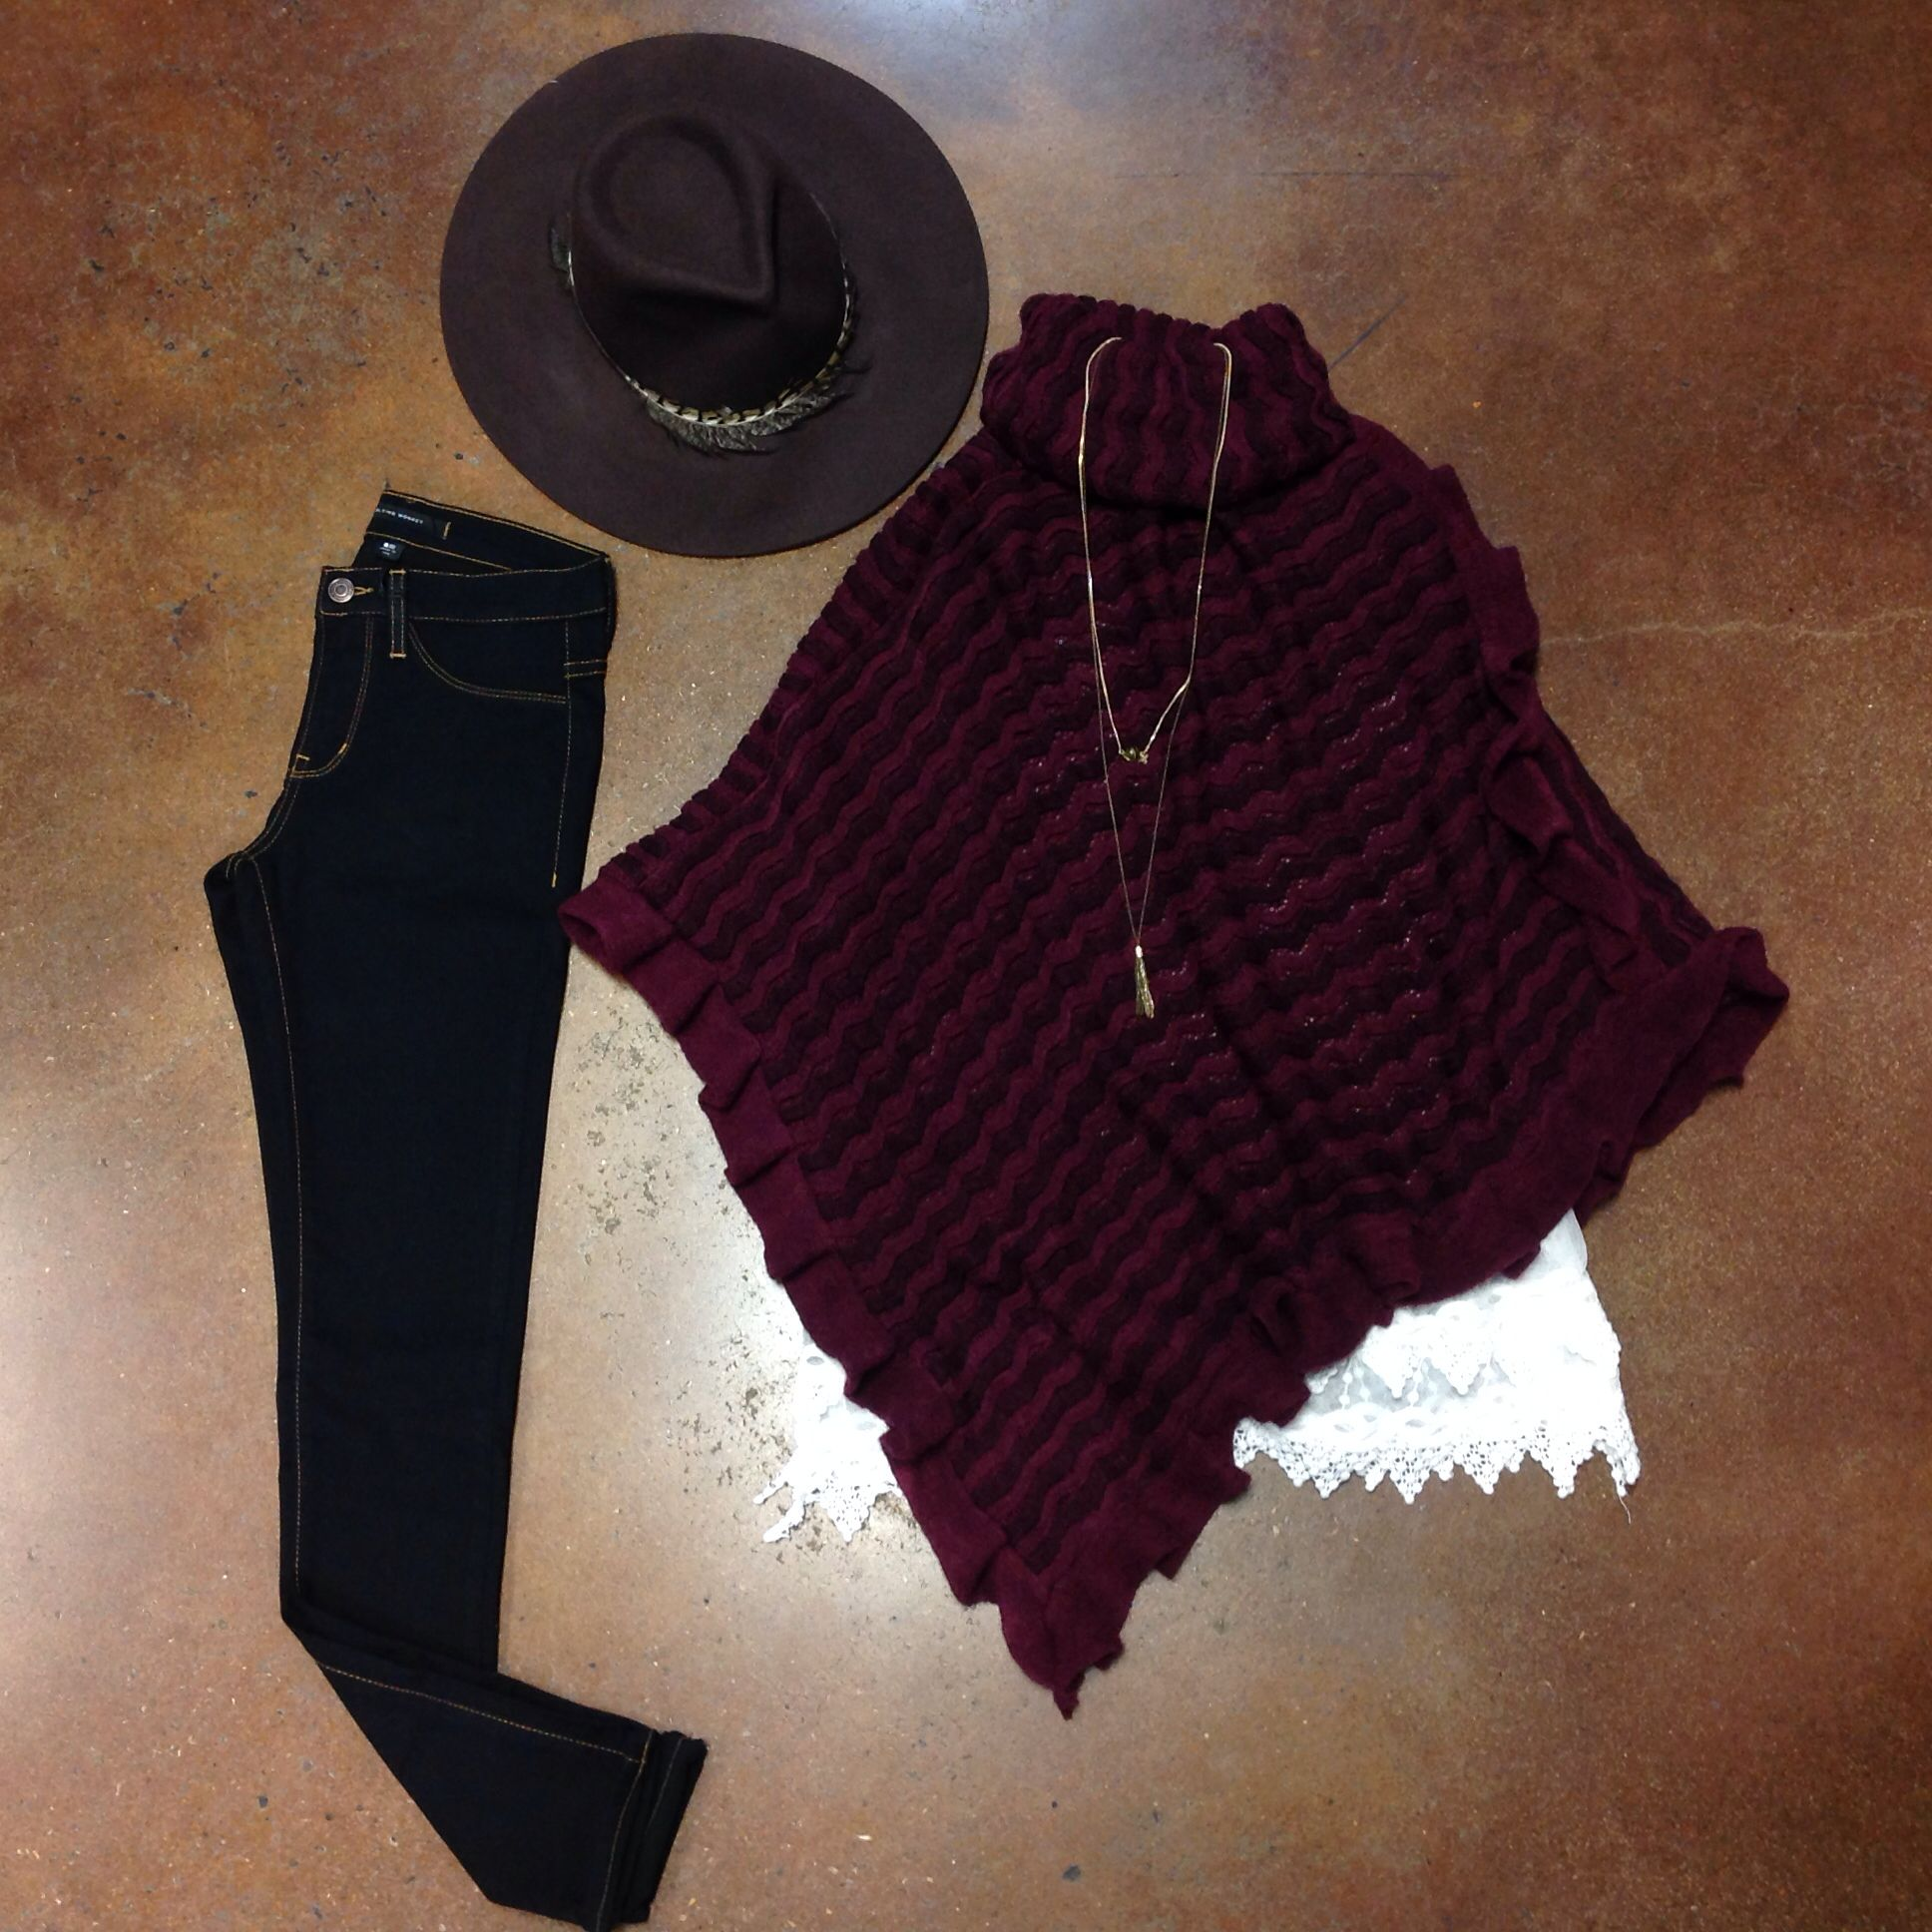 {Ruffles & Lace} Cranberry Ruffle Poncho $44 Ivory Layered Lace Slip $36-Online & In Store Two Tone Layered Chain $16 Dark Wash Jegging #madeinusa $62 Feathered Wool Safari $48 #lace #poncho #feathered #elysianlove #winterstyle  http://www.shopelysian.com/collections/new-items/products/layered-lace-slip